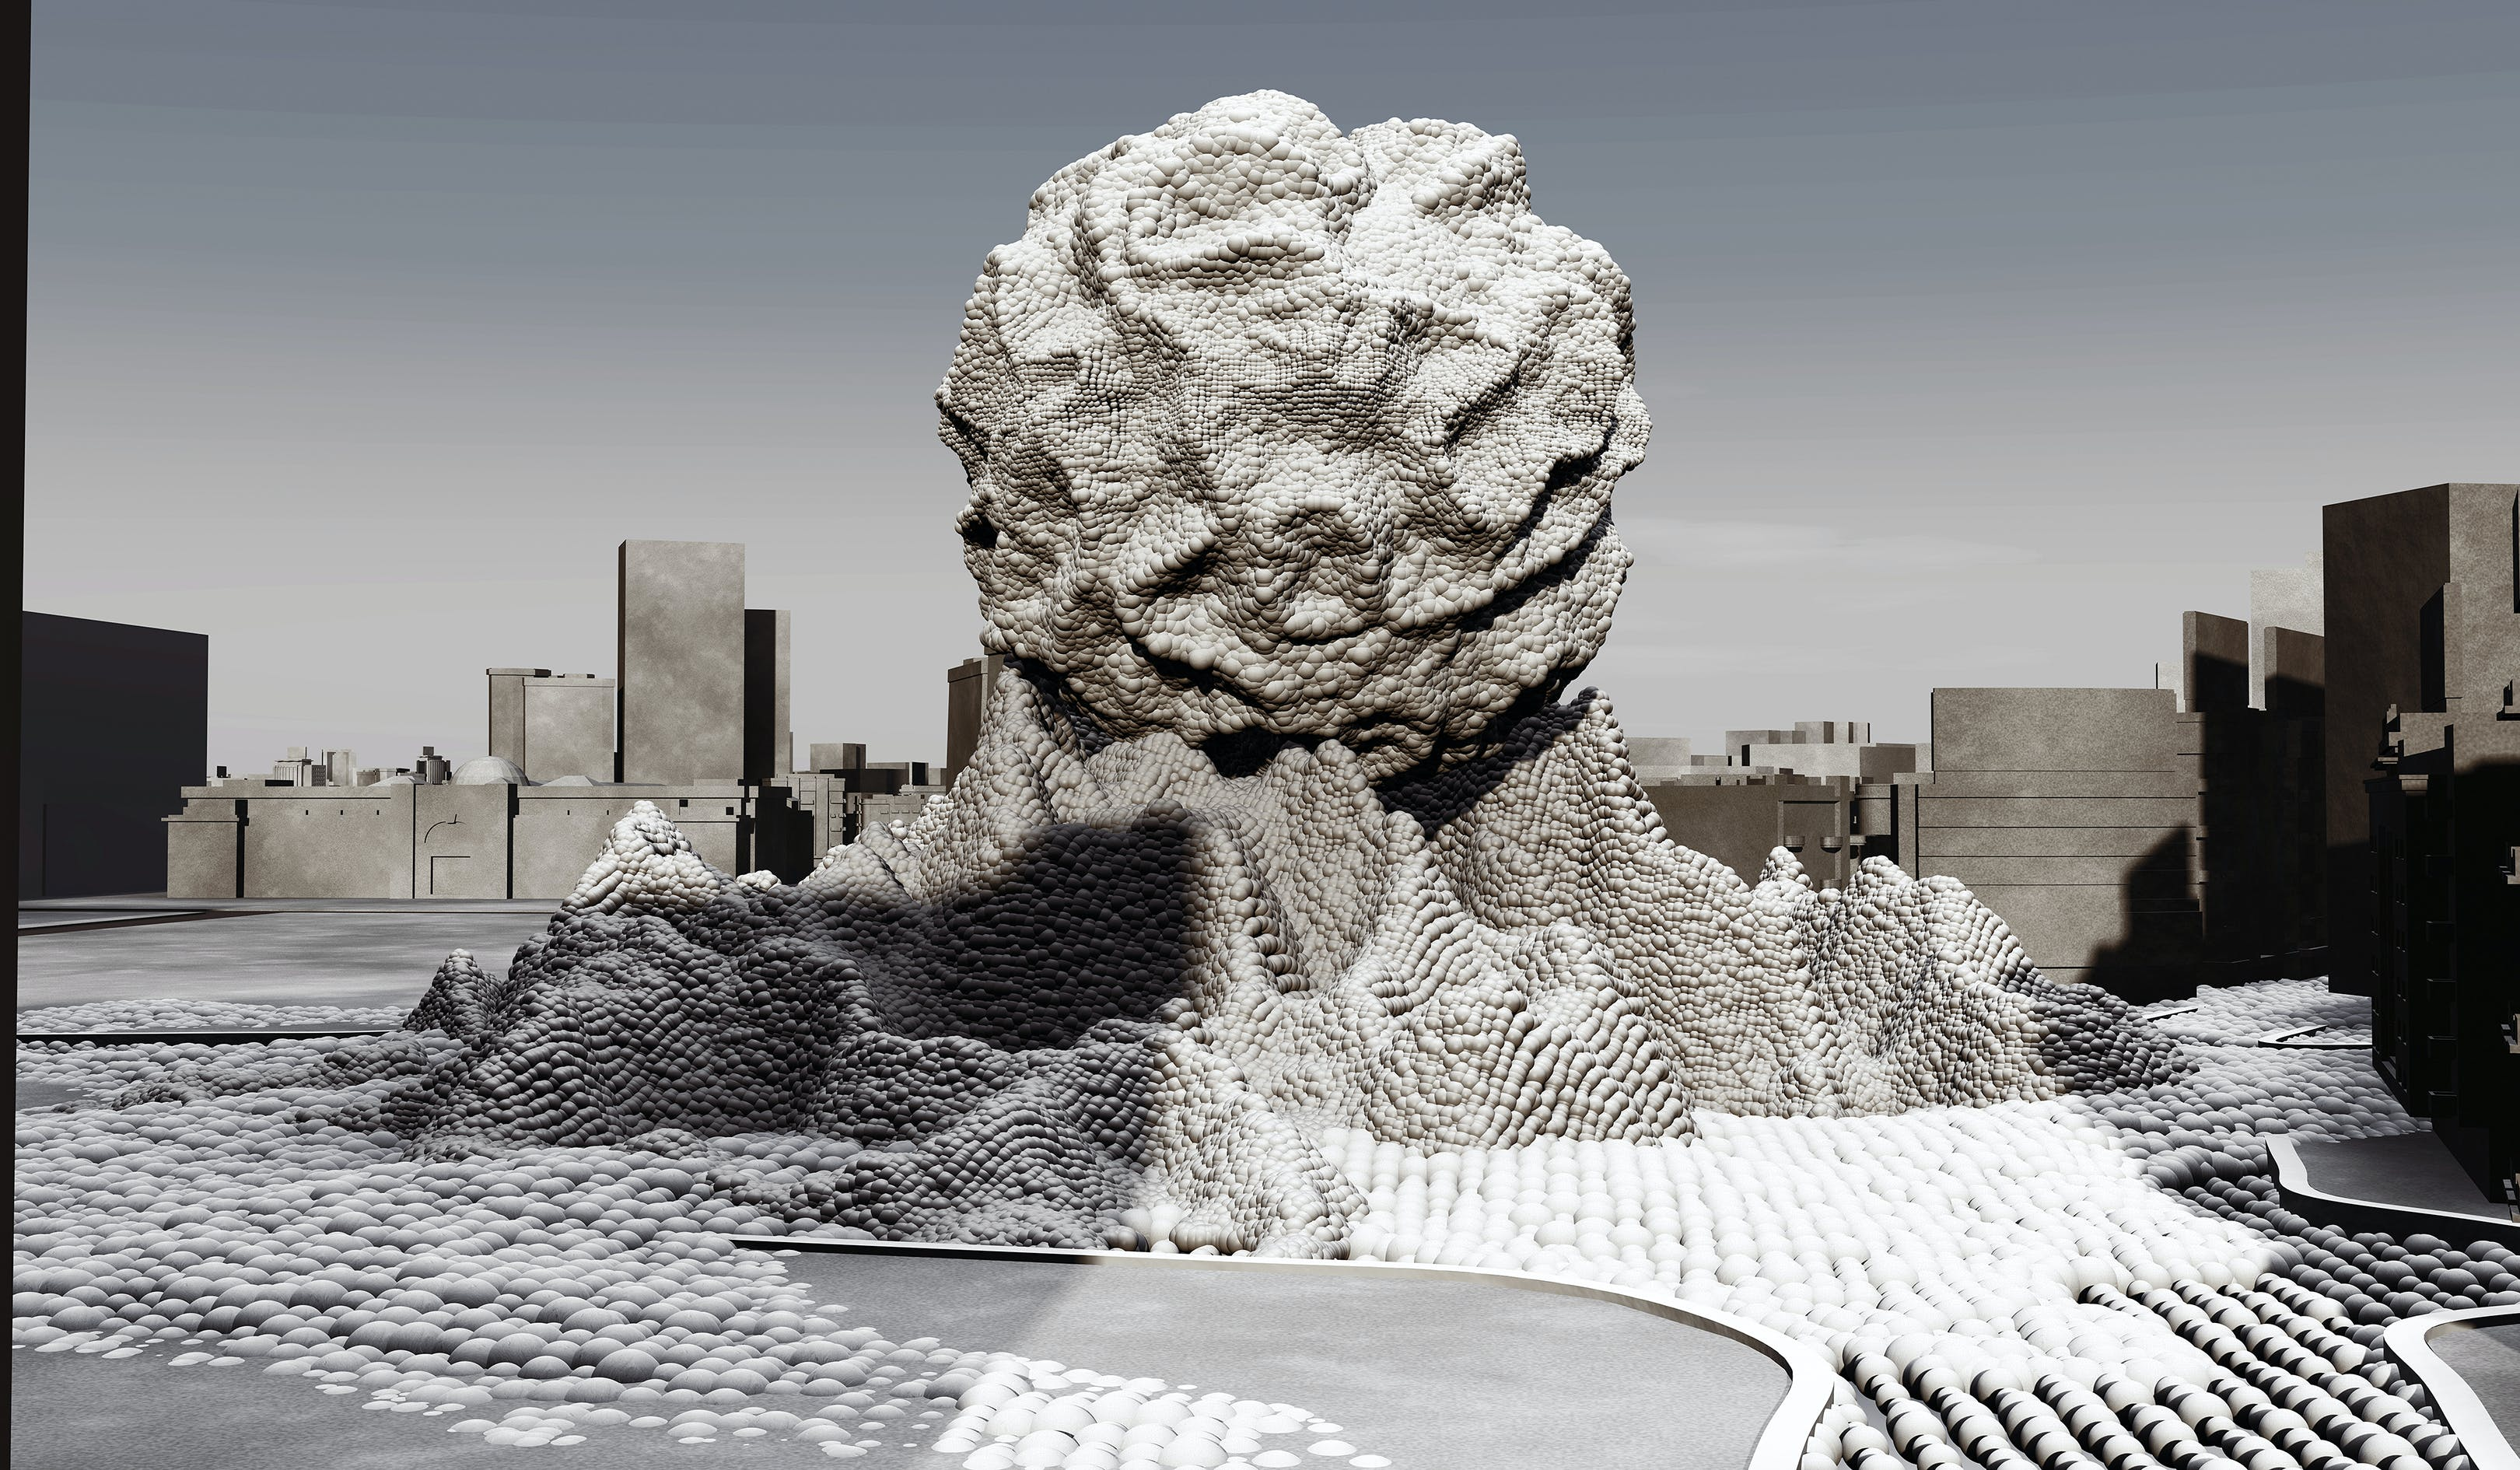 """sci arc thesis 2011 Sci-arc thesis 2011 """"this thought-provoking psychological thriller explores the dark recesses of the human mind, tackling concepts such as ethics, morality, consciousness, and human nature."""